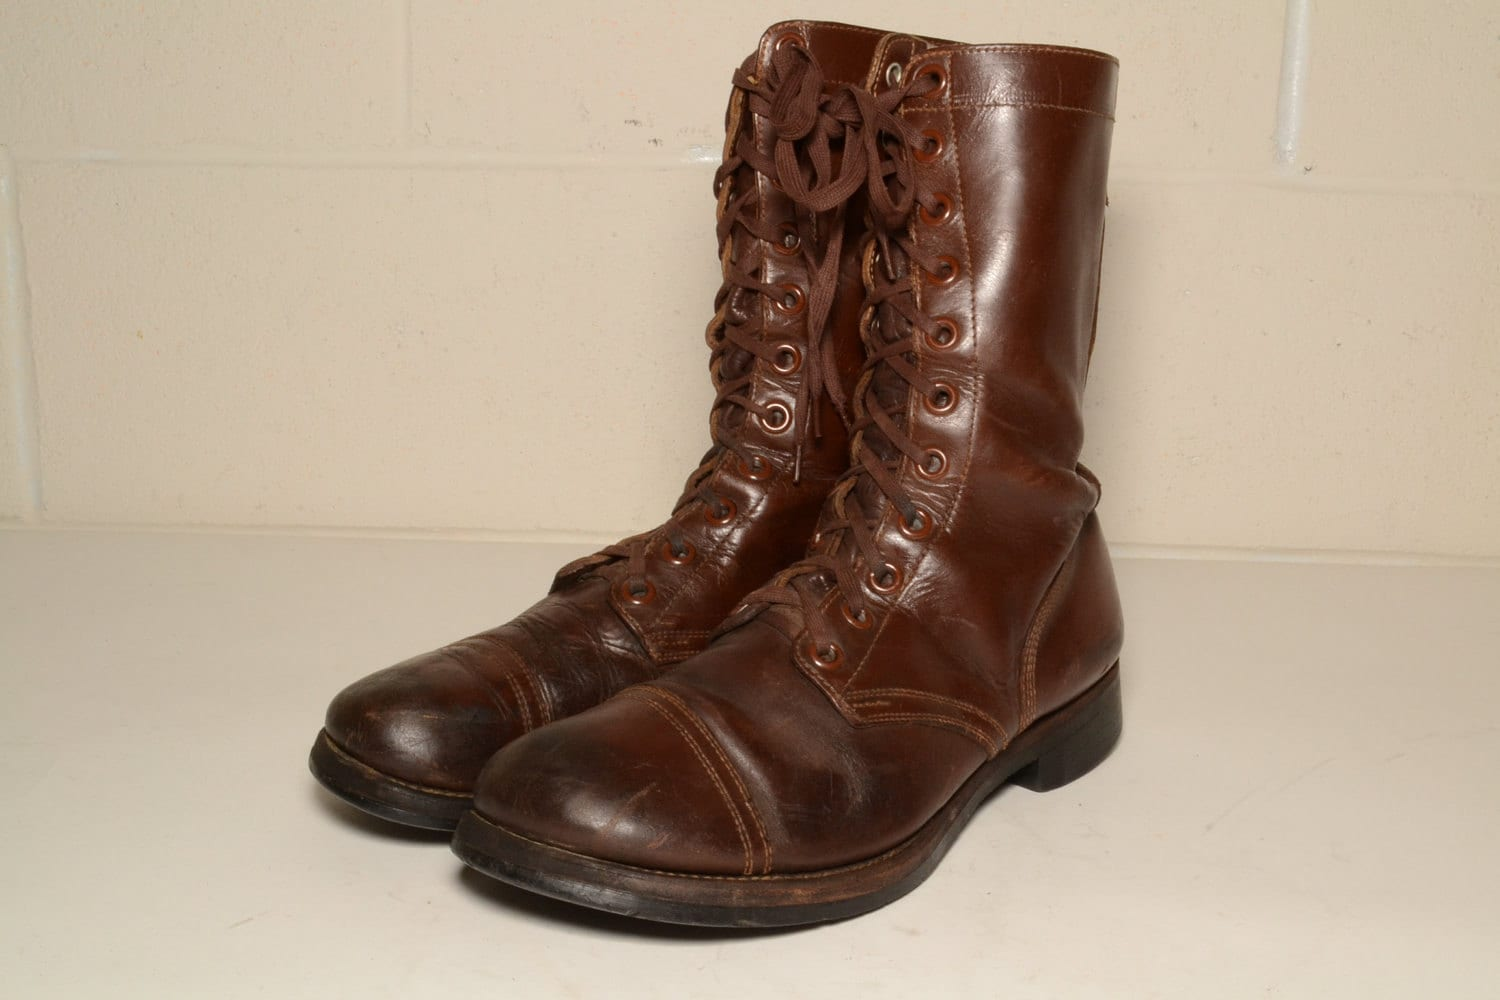 1950s us army brown captoe combat boots size 11